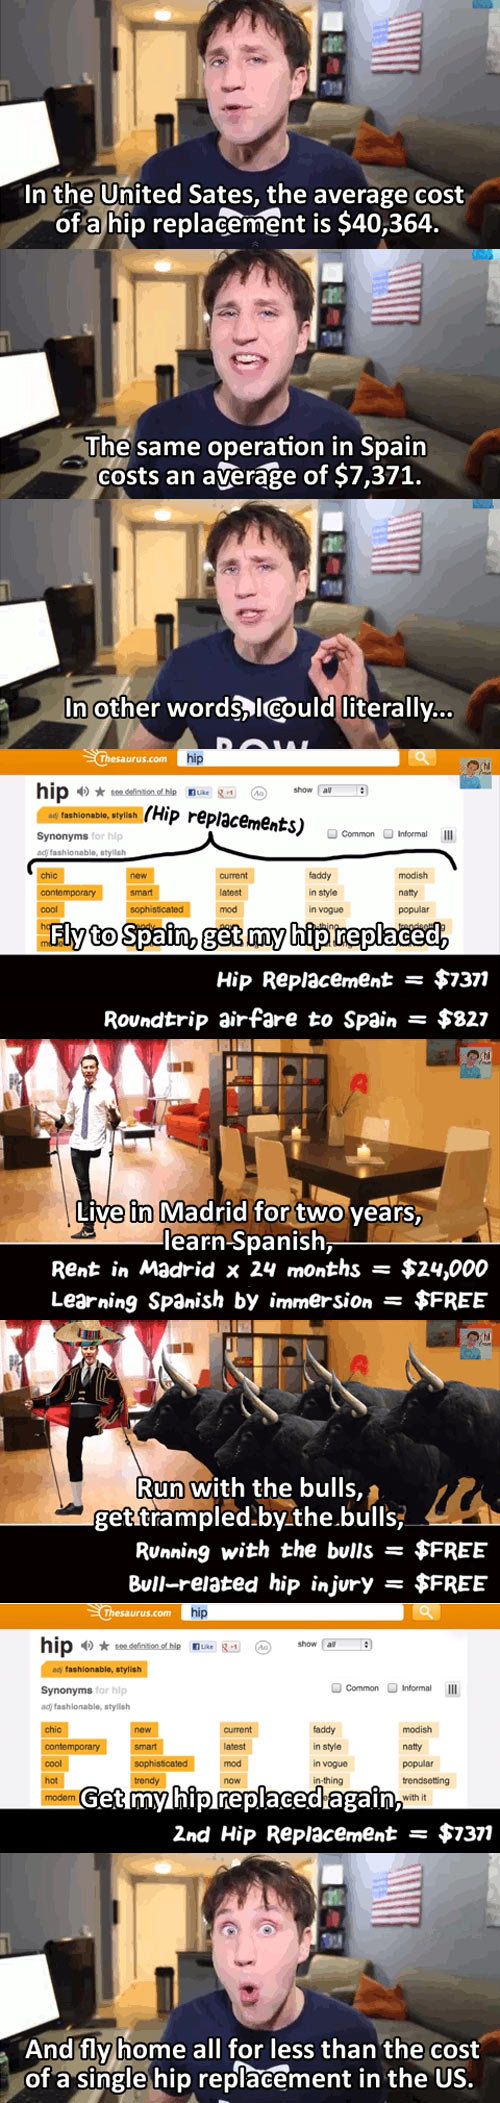 cost hip replacement